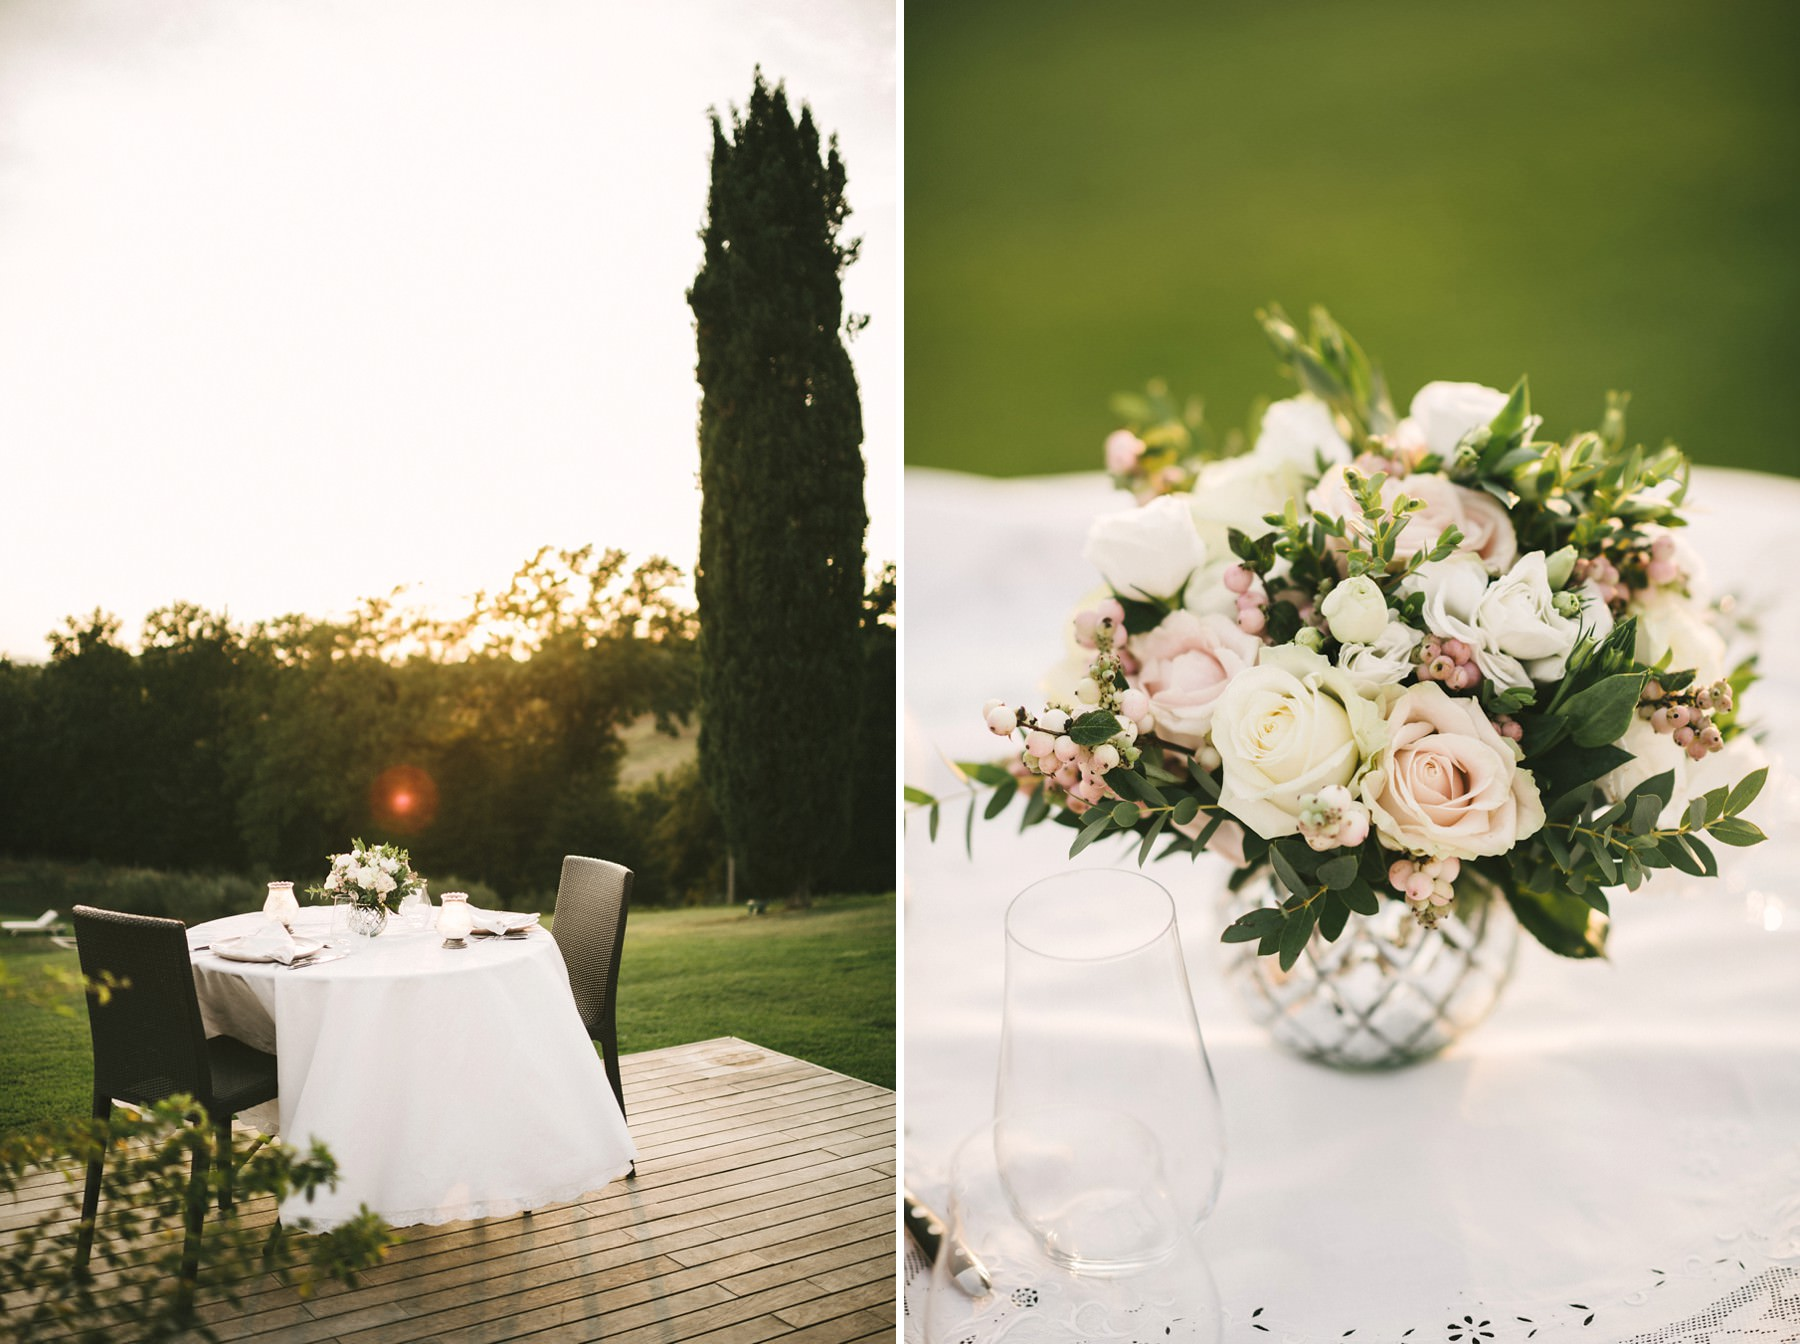 Charming sunset dinner setting for Lillianna & Ross elopement in Tuscany countryside Casetta farmhouse near Florence